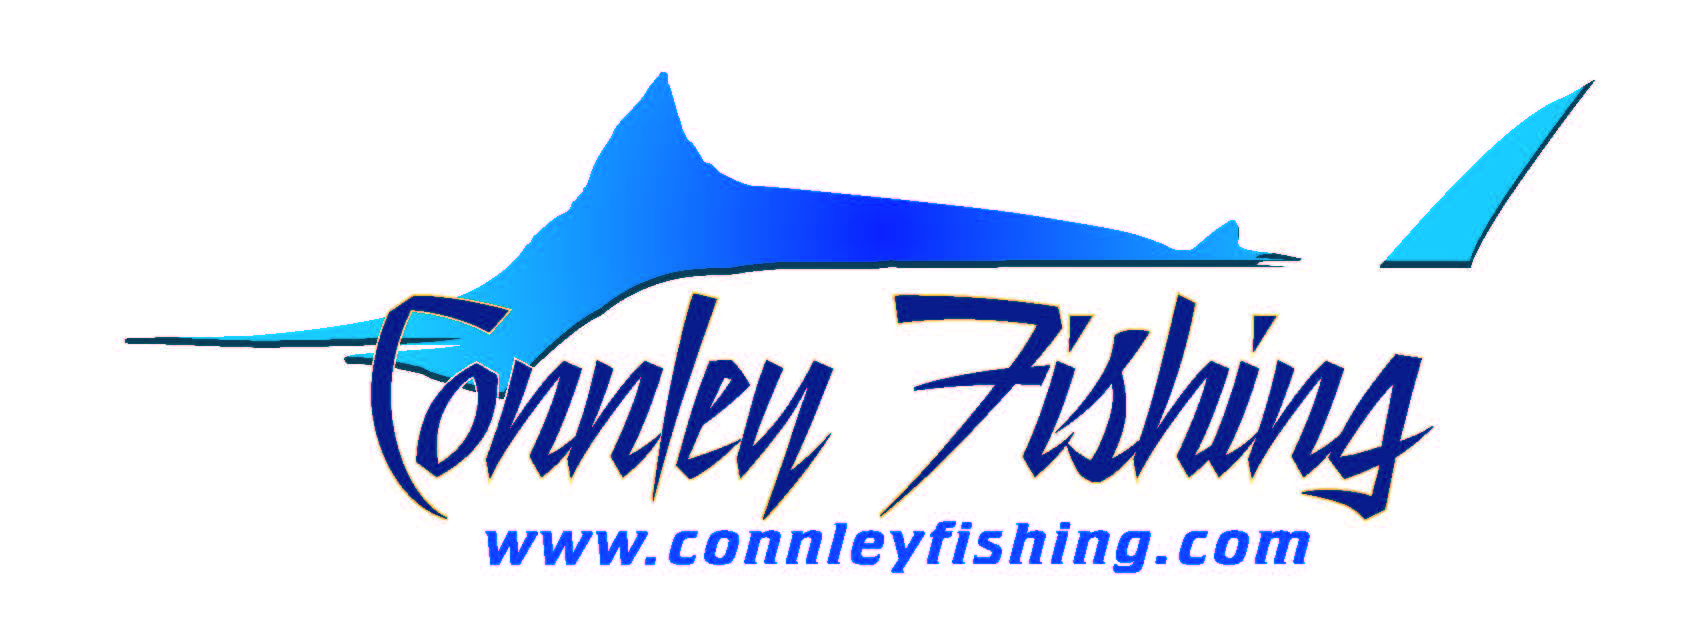 connley logo